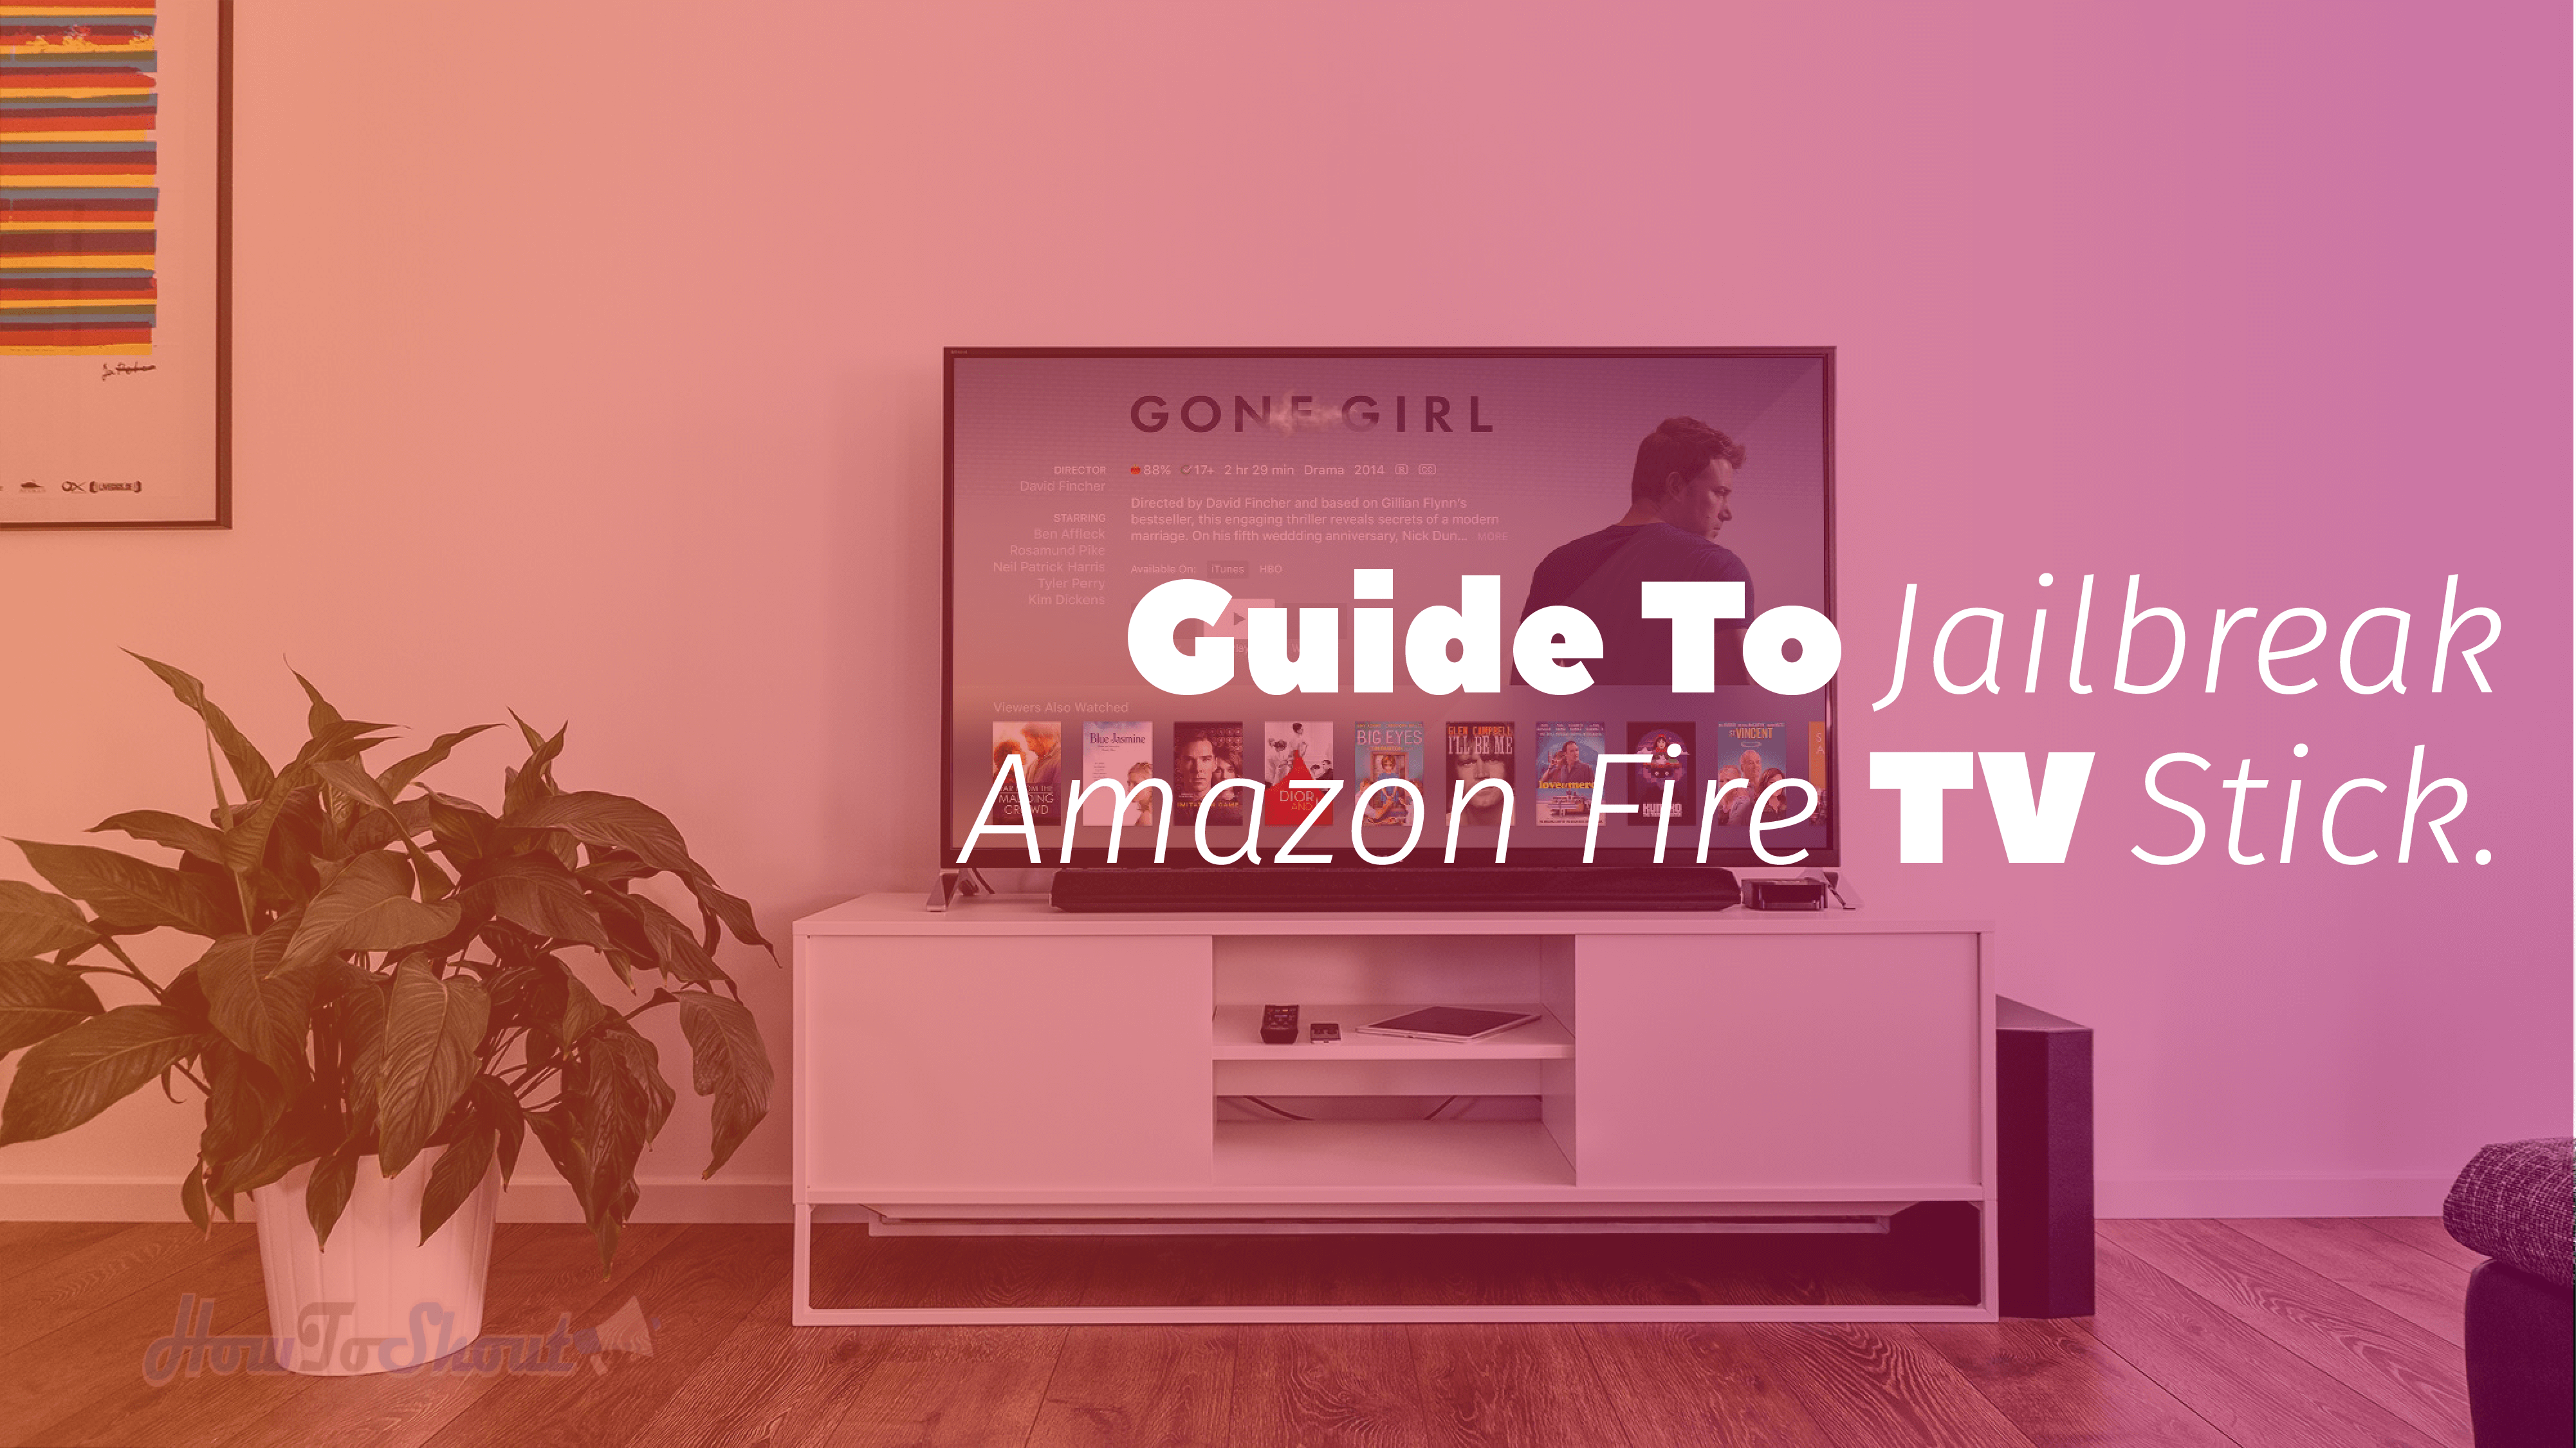 jailbreak firestick How to jailbreak firestick, Amazon